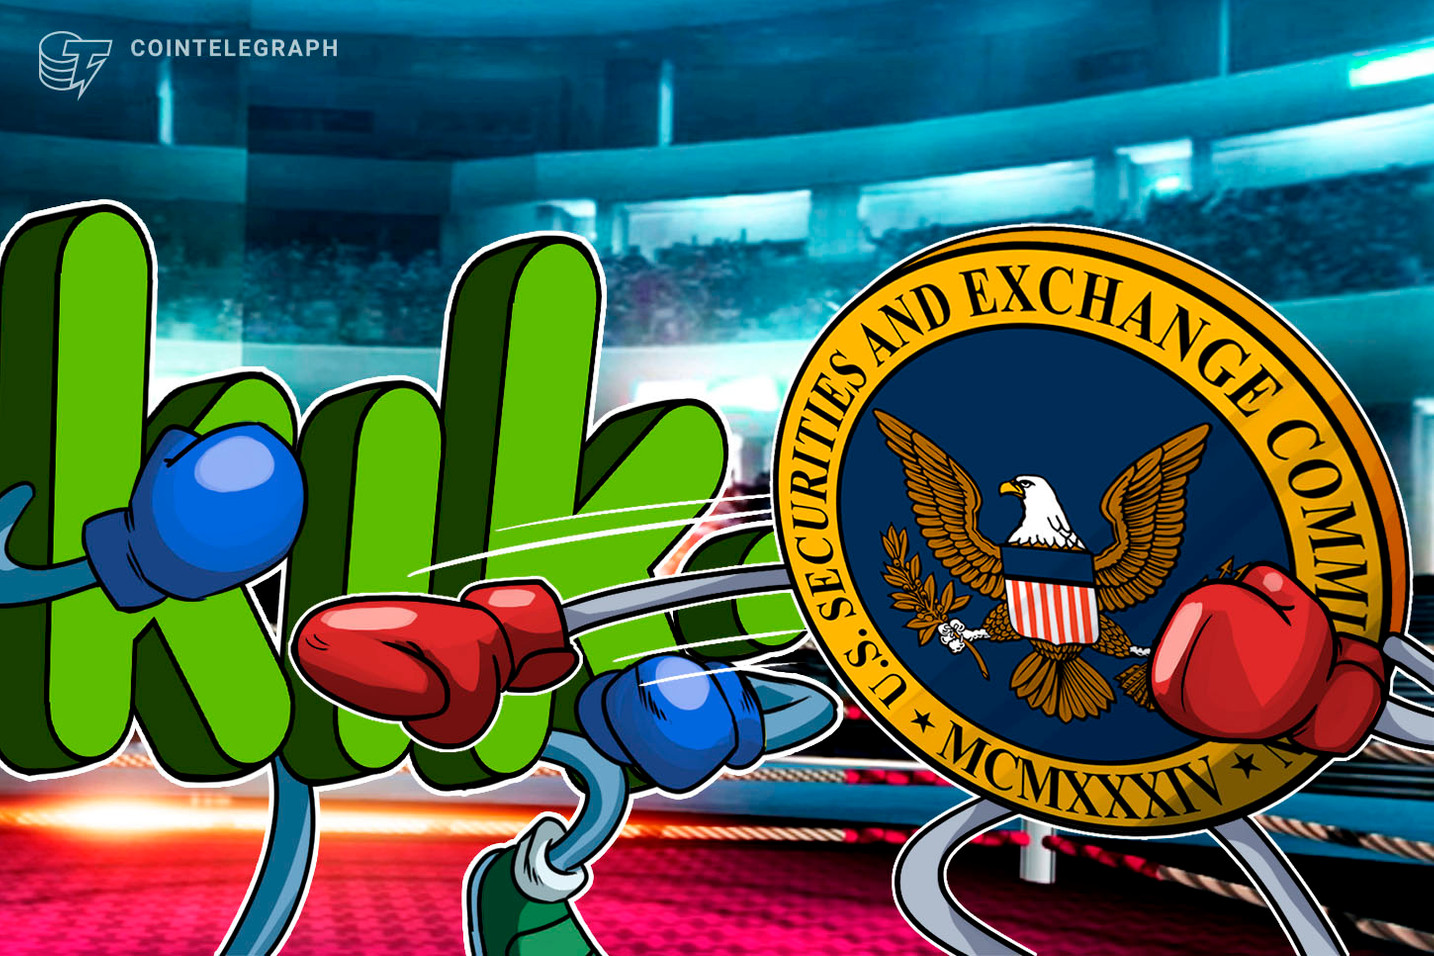 Kik Representative Will Give Deposition in SEC Case on Jan. 28